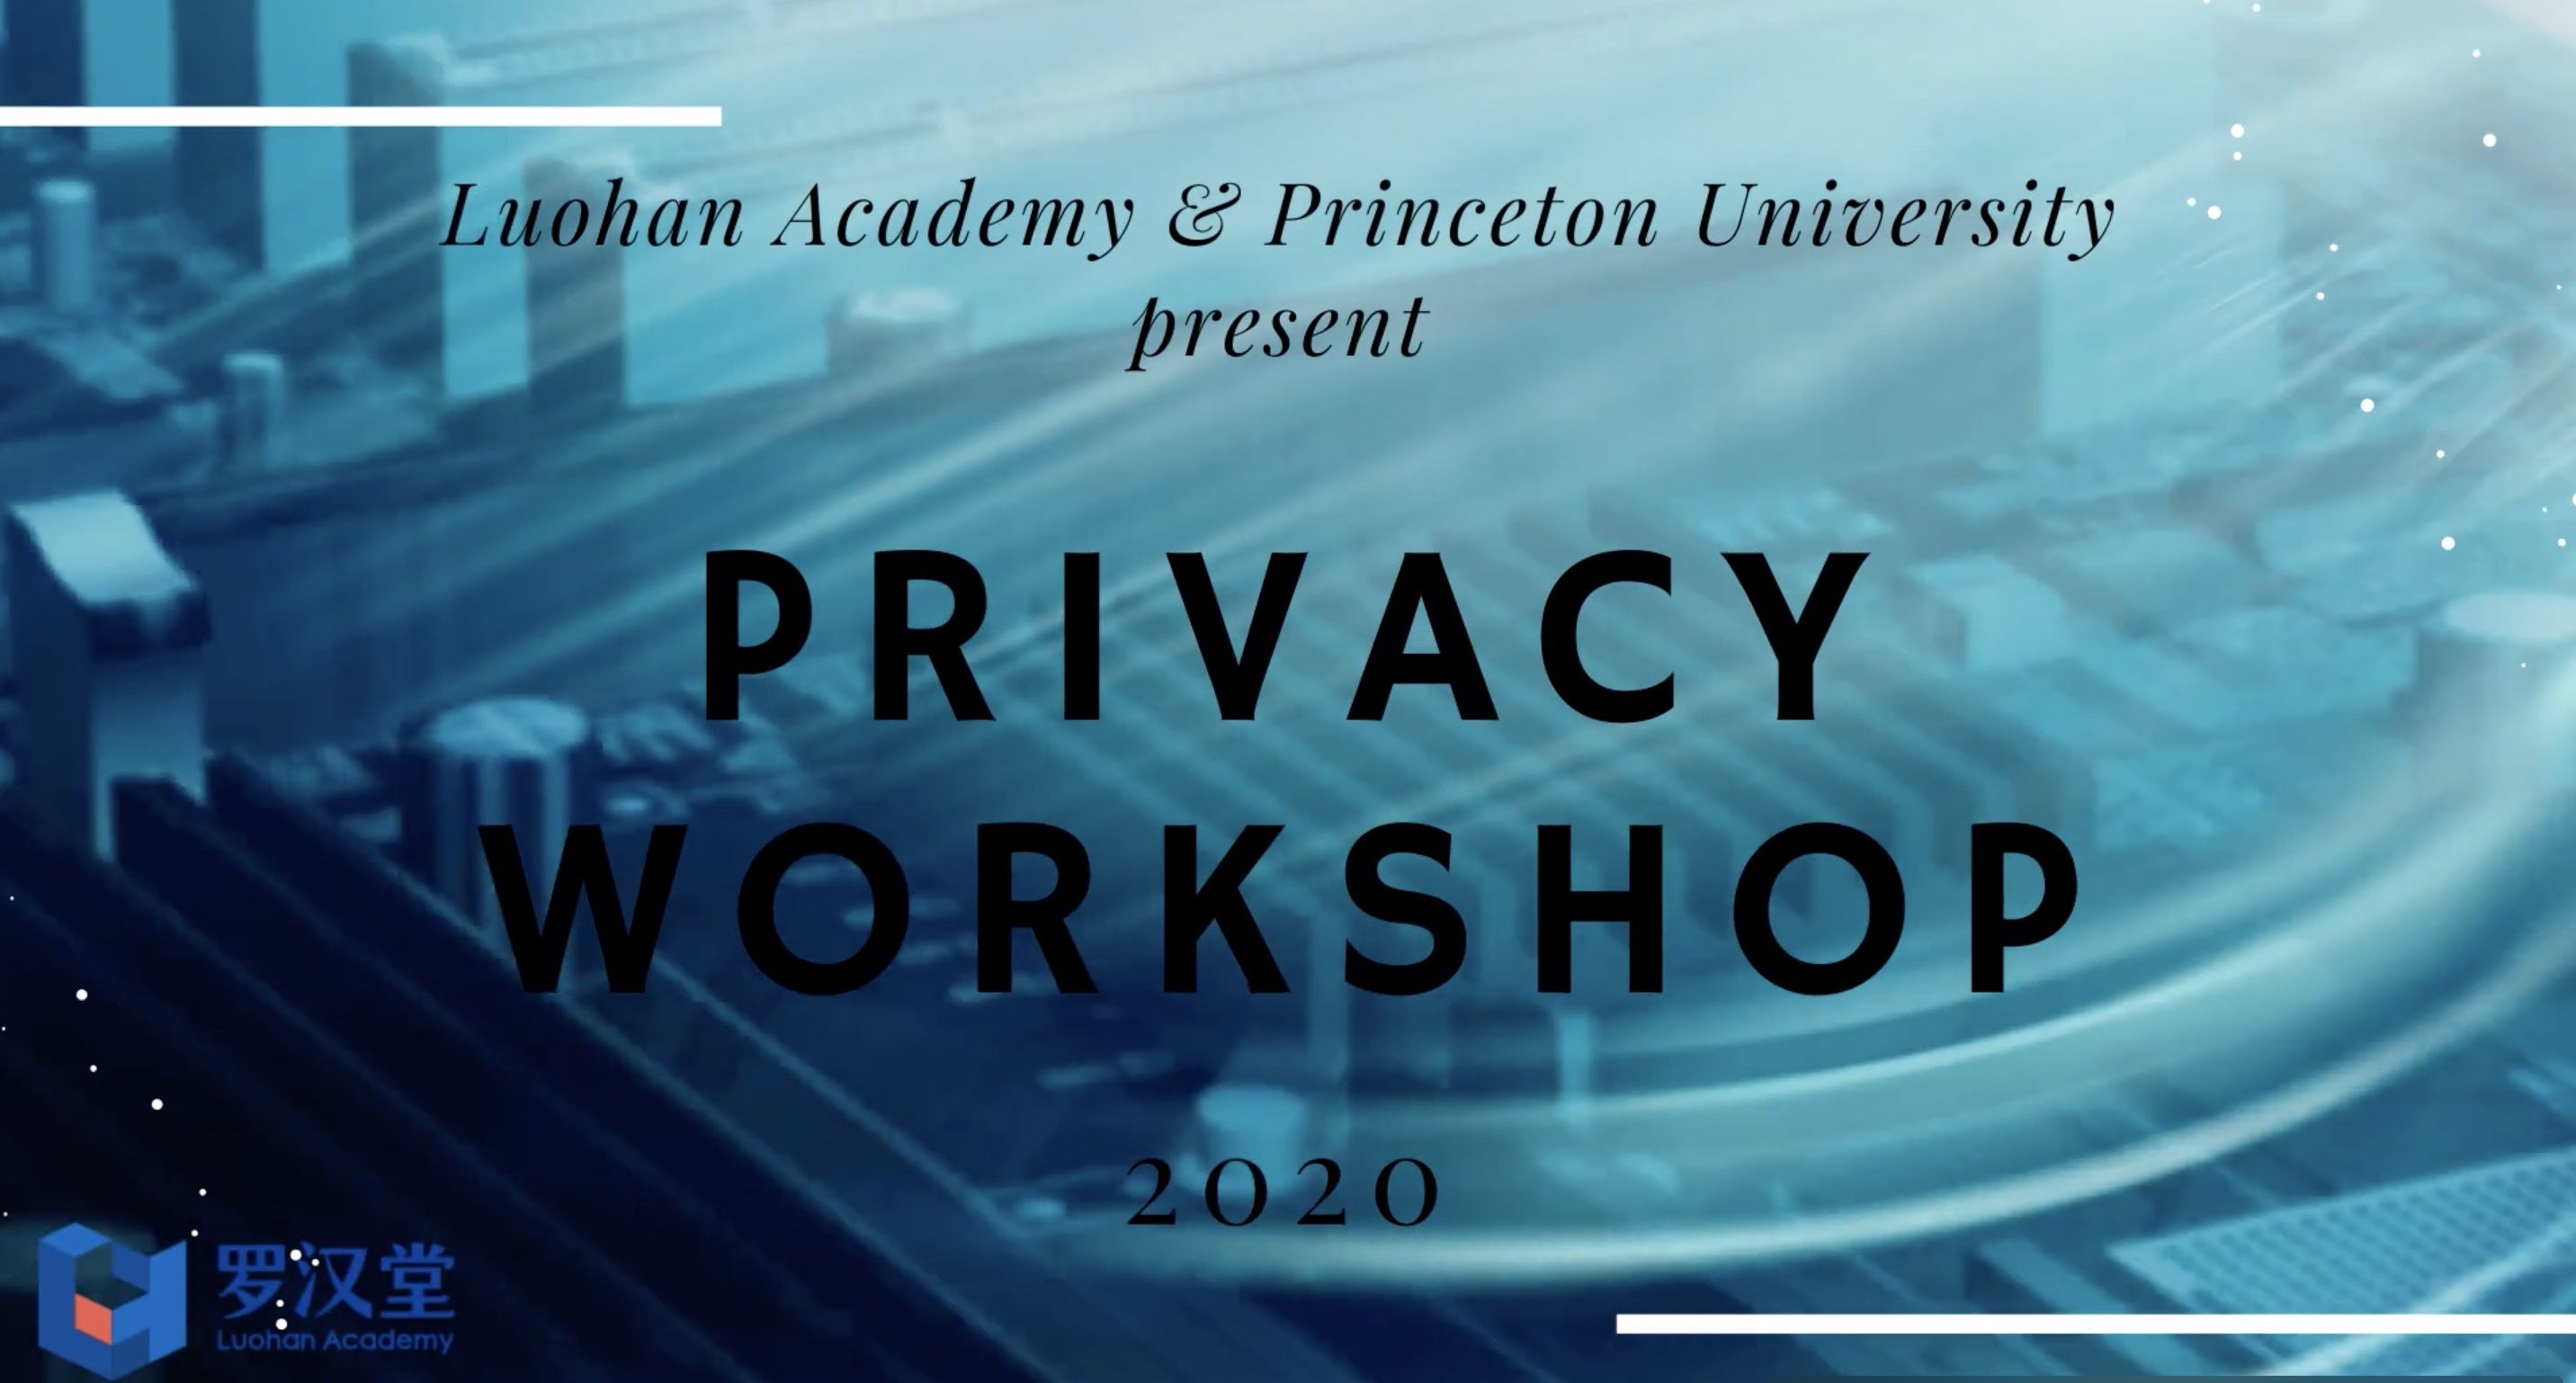 Luohan Academy and Princeton University Privacy Workshop